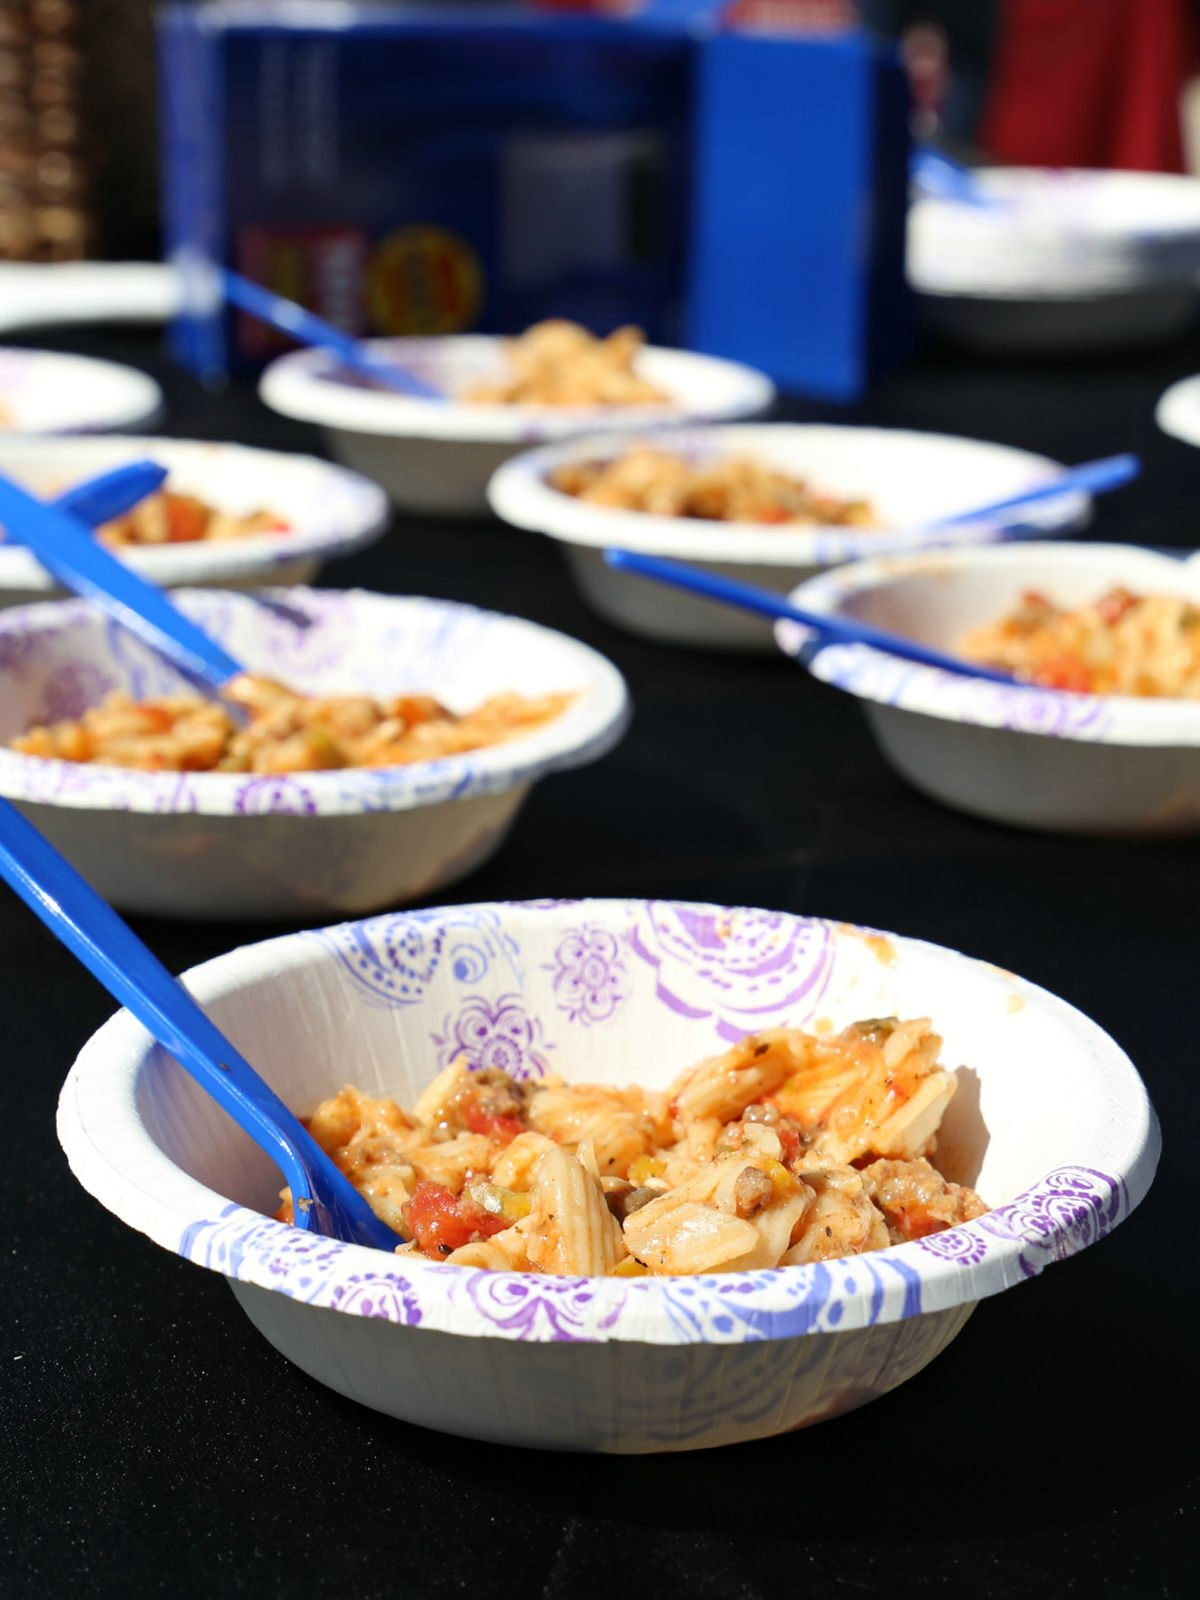 Paper bowls filled with brat stew and blue spoons.